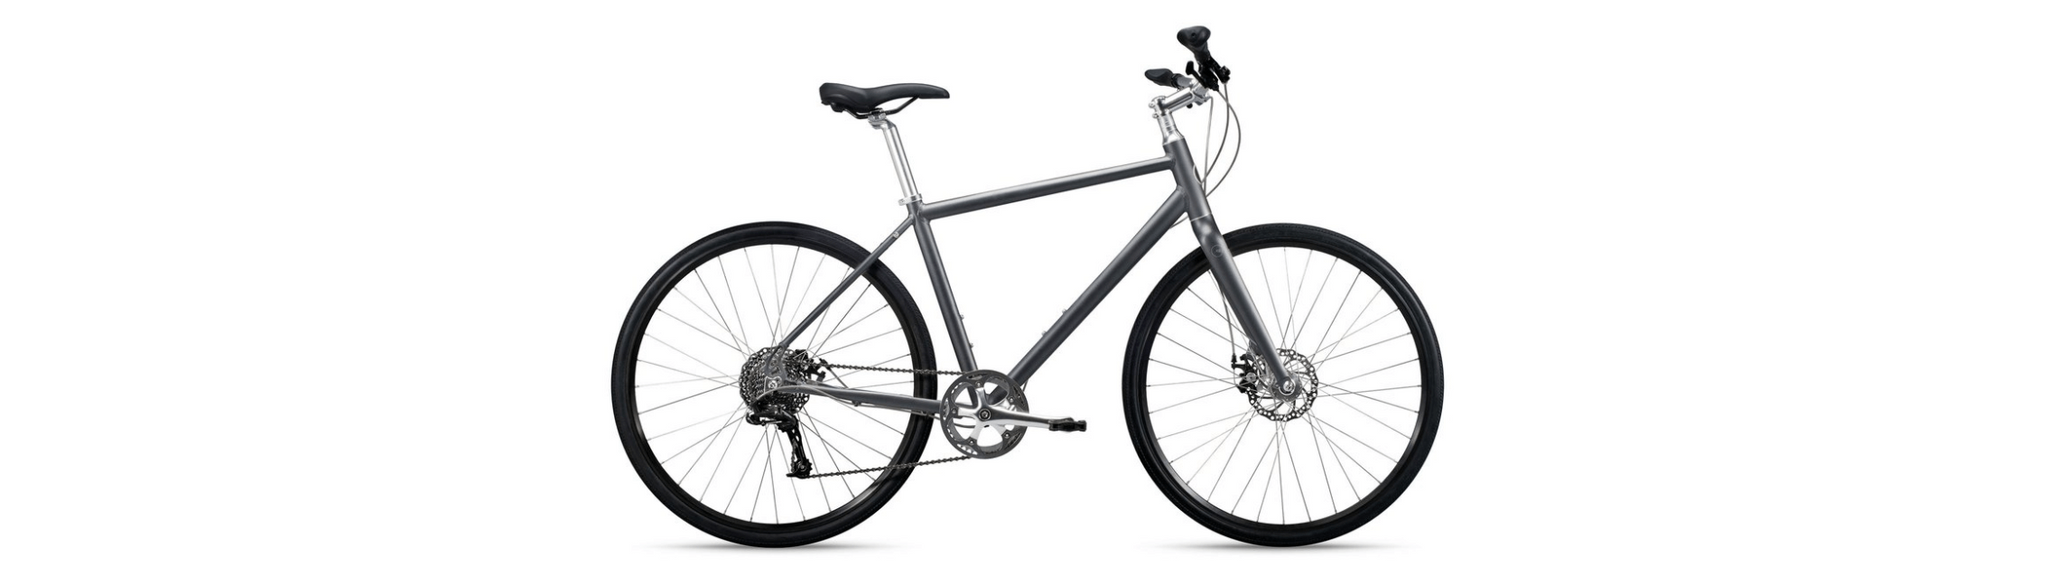 Momentum Mag - Daily Commuting on the C:1 City Bike by roll: